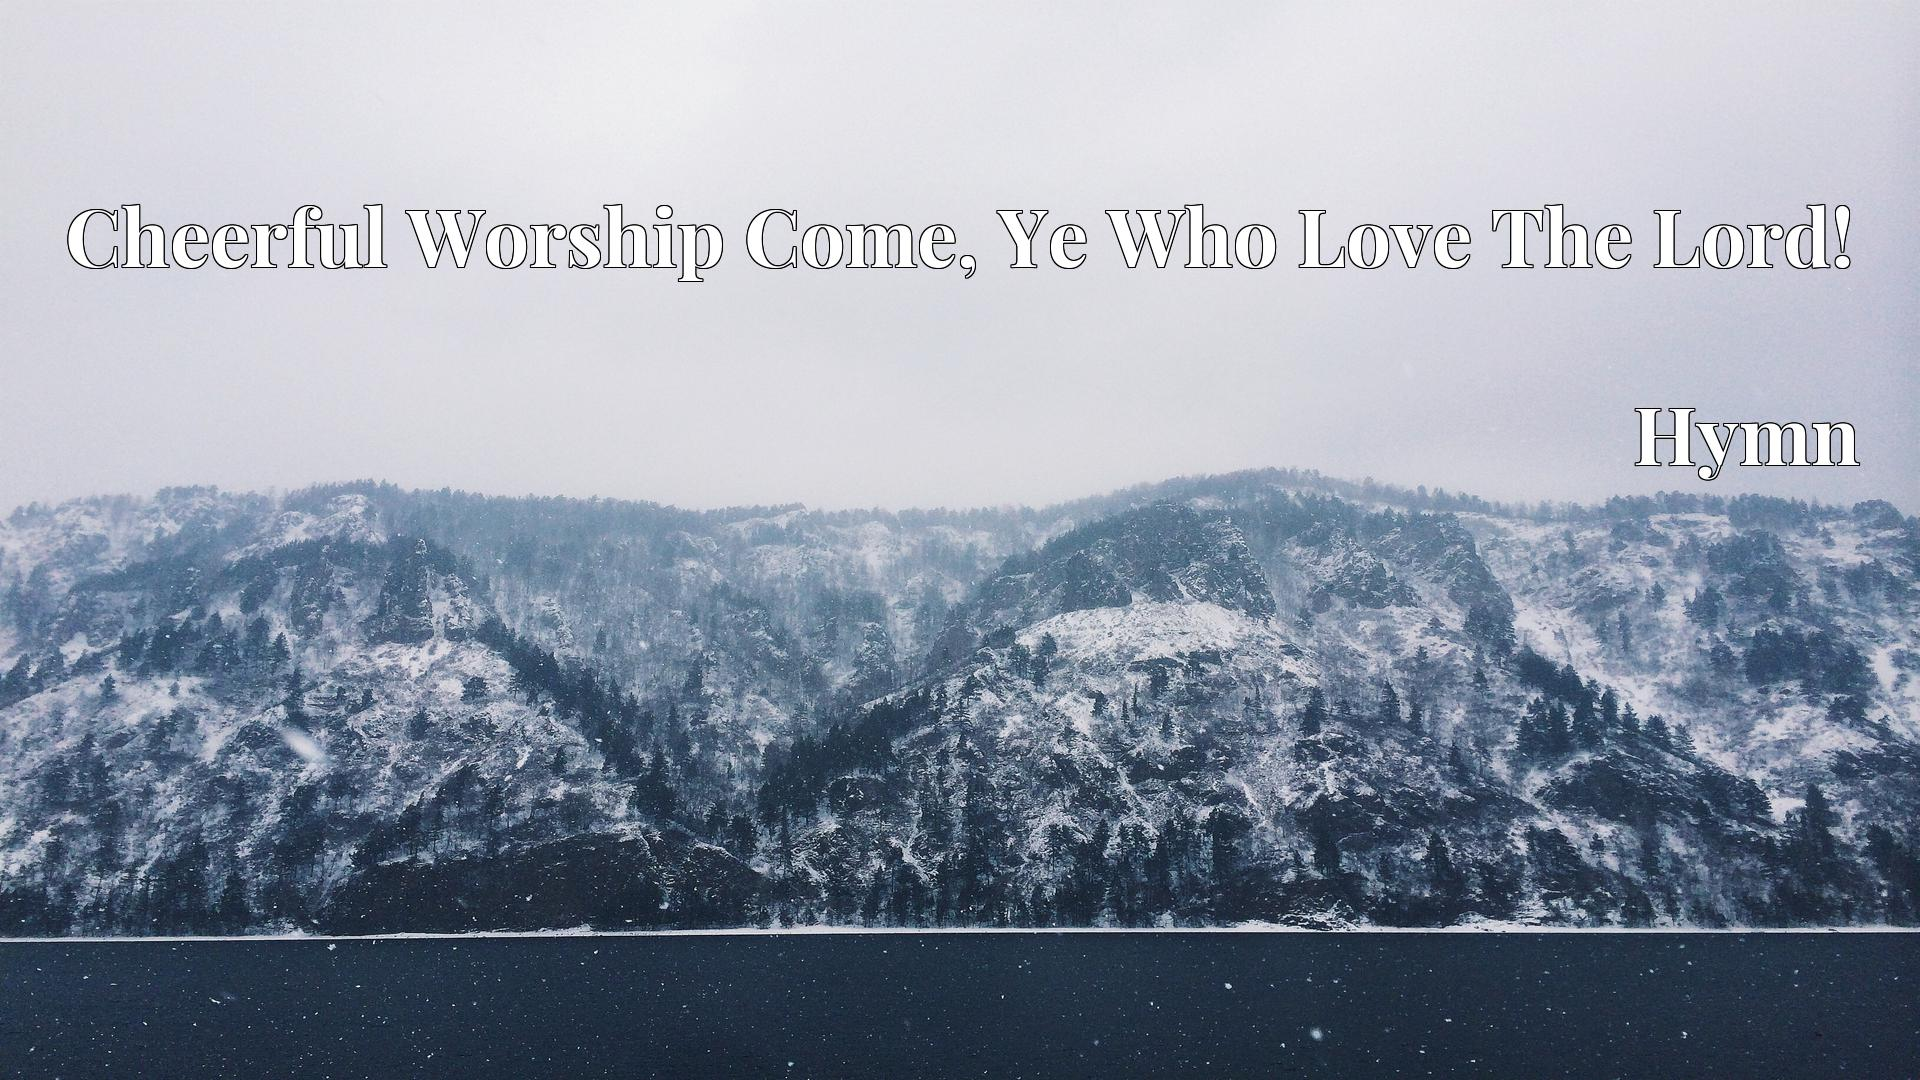 Cheerful Worship Come, Ye Who Love The Lord! Hymn